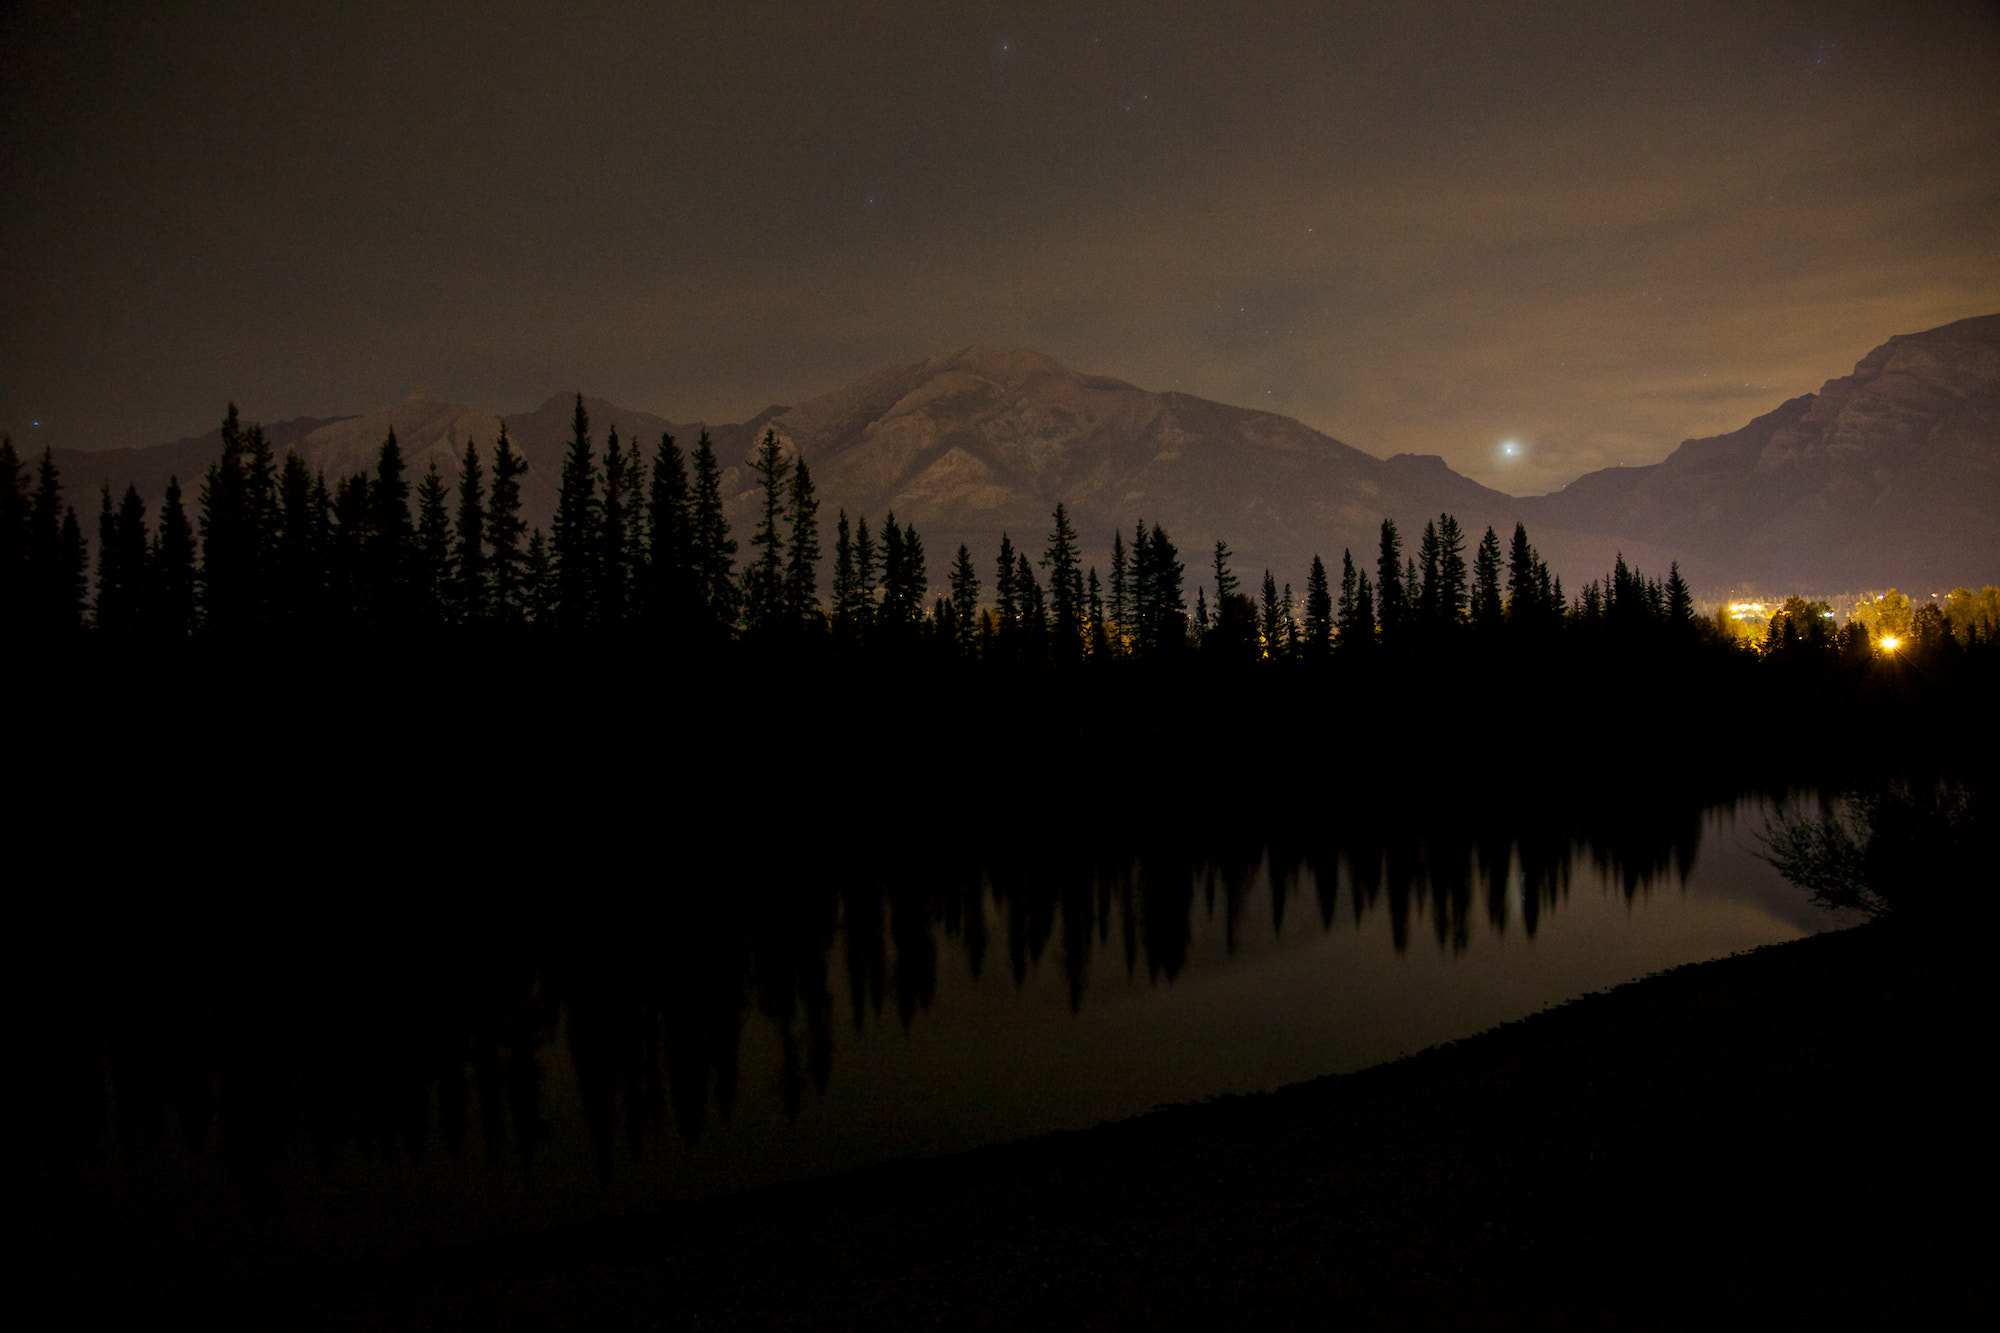 Photograph Canmore at night by Landon Ketterer on 500px